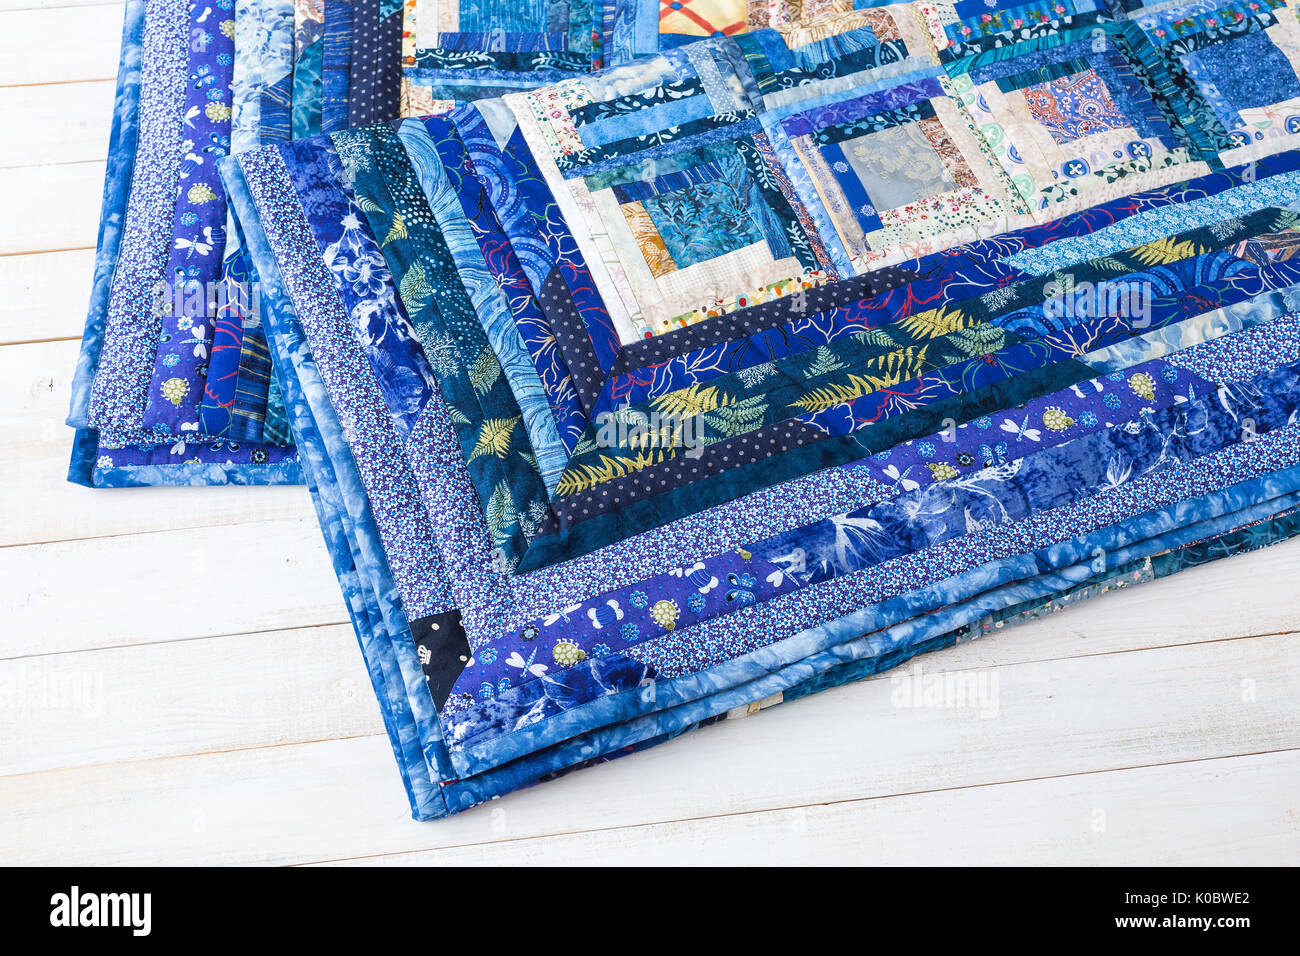 decoration, comfort, passion, fondness, stitching, patchwork concept - two dark blue quilt neatly maded of different patches with interesting floral pattern and almost invisible stitches - Stock Image